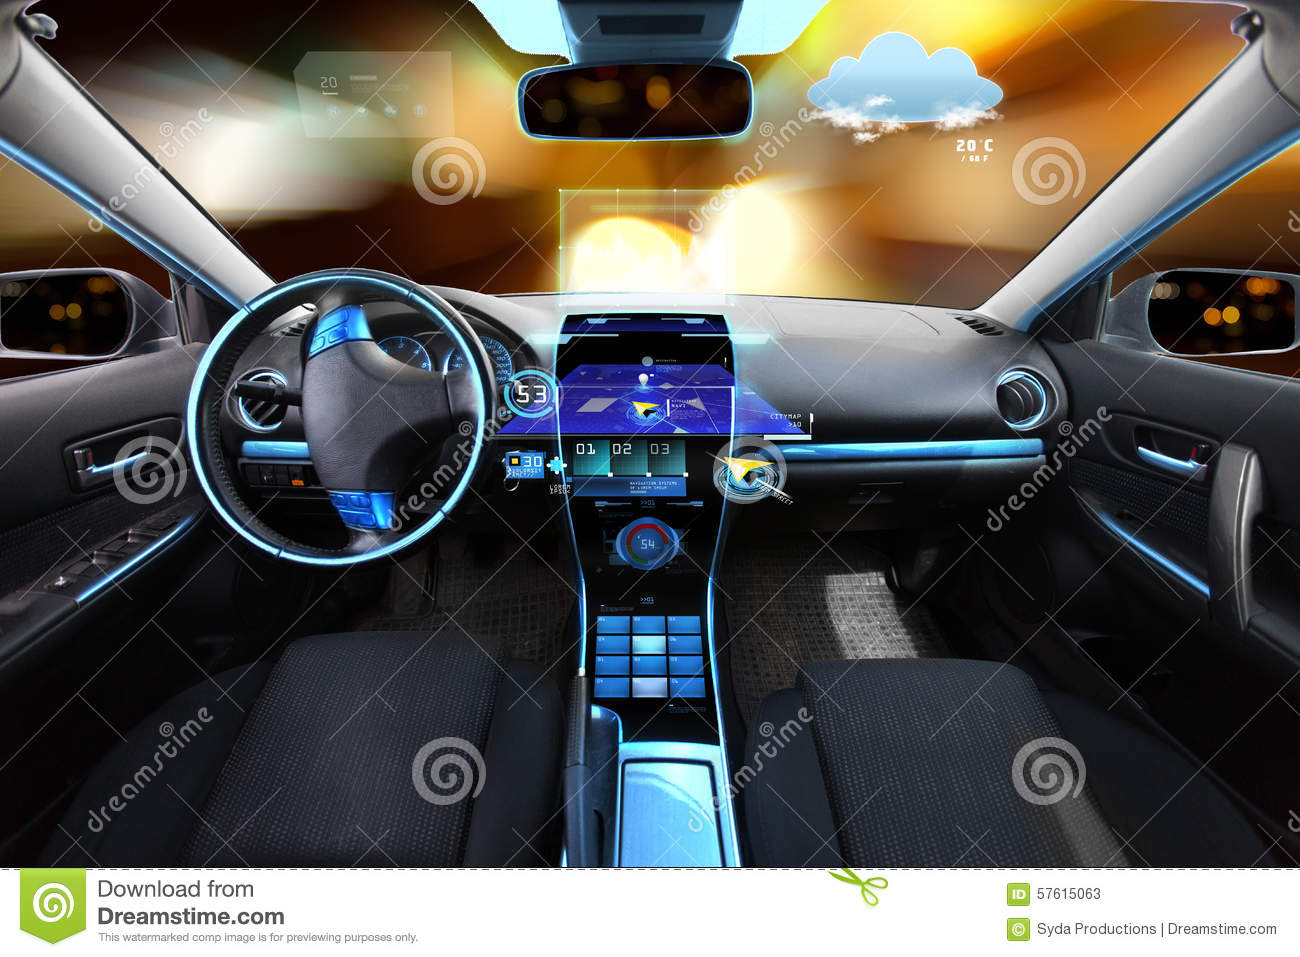 Car Salon With Navigation System And Meteo Sensors Stock